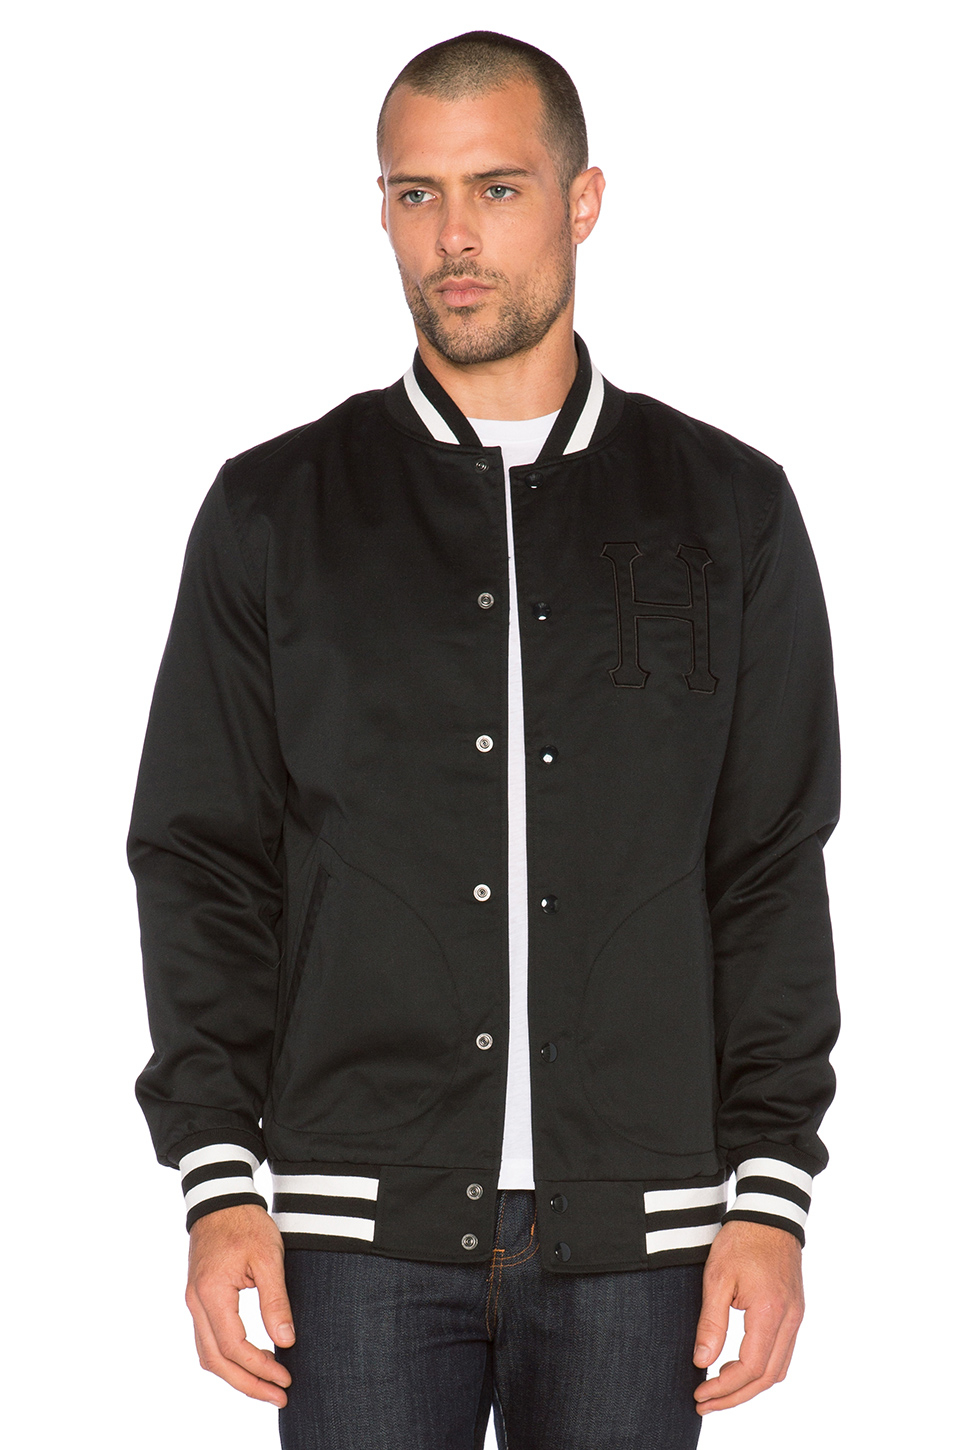 Custom Letterman Jackets For Men Custom letterman jackets for men made of Top Quality Wool Navy Blue and Genuine Leather Sleeves in top grain white. We used the high quality acrylic ribbing bottom, collar and cuffs for this custom Letterman Jackets for men.